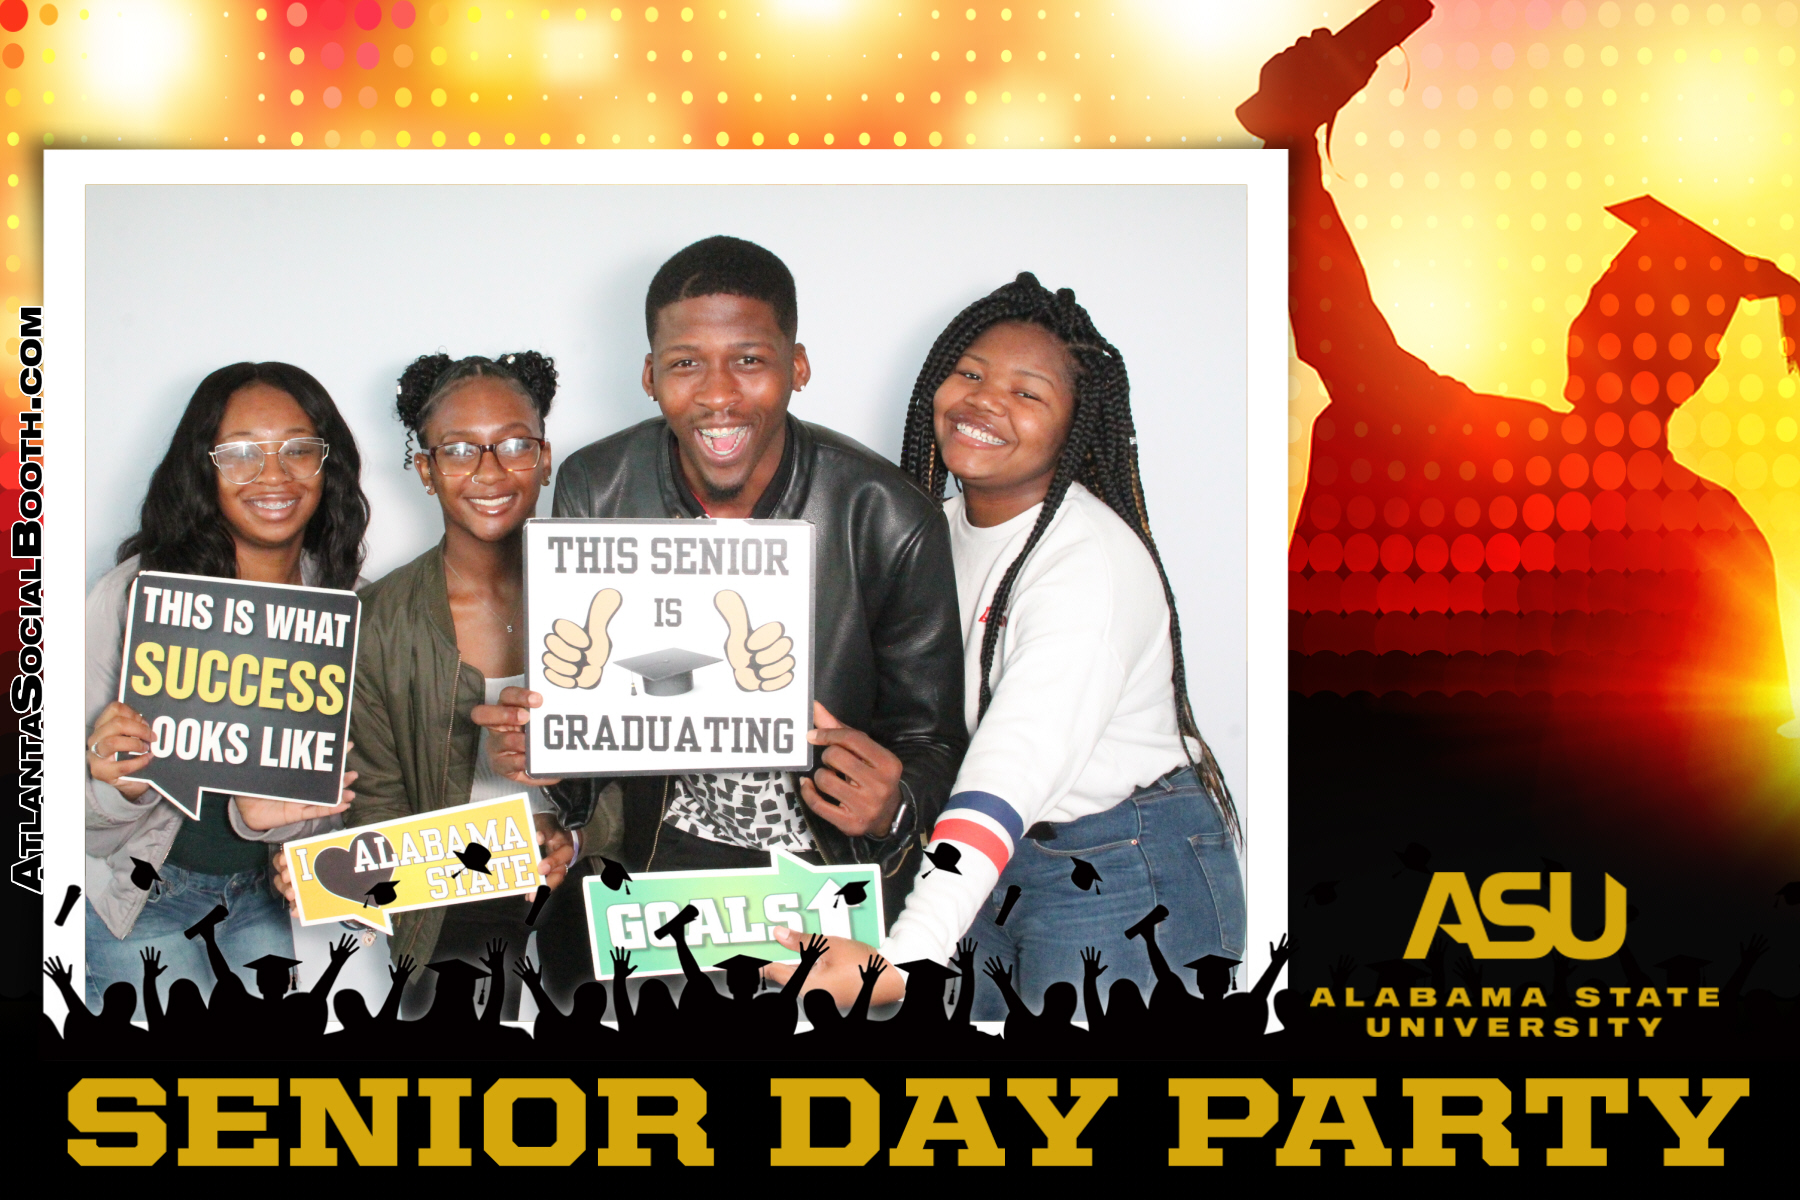 ASU Senior Day Party